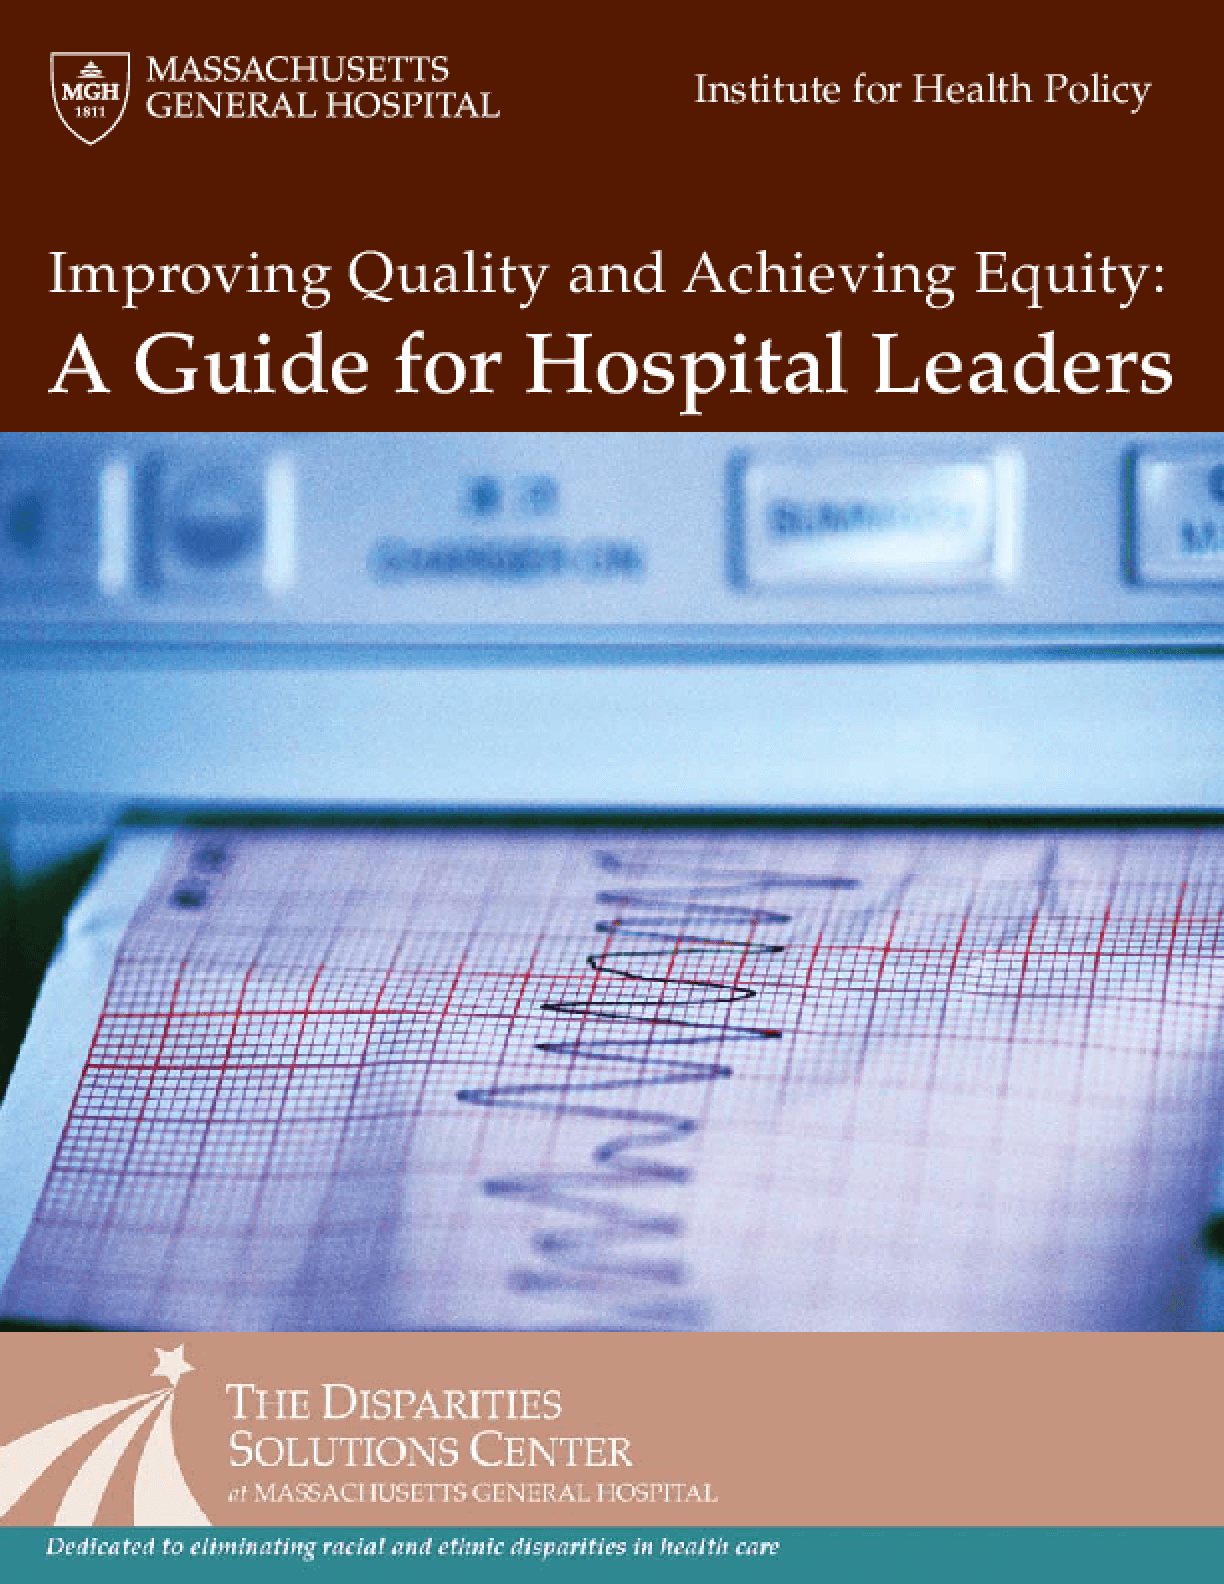 Improving Quality and Achieving Equity: A Guide for Hospital Leaders